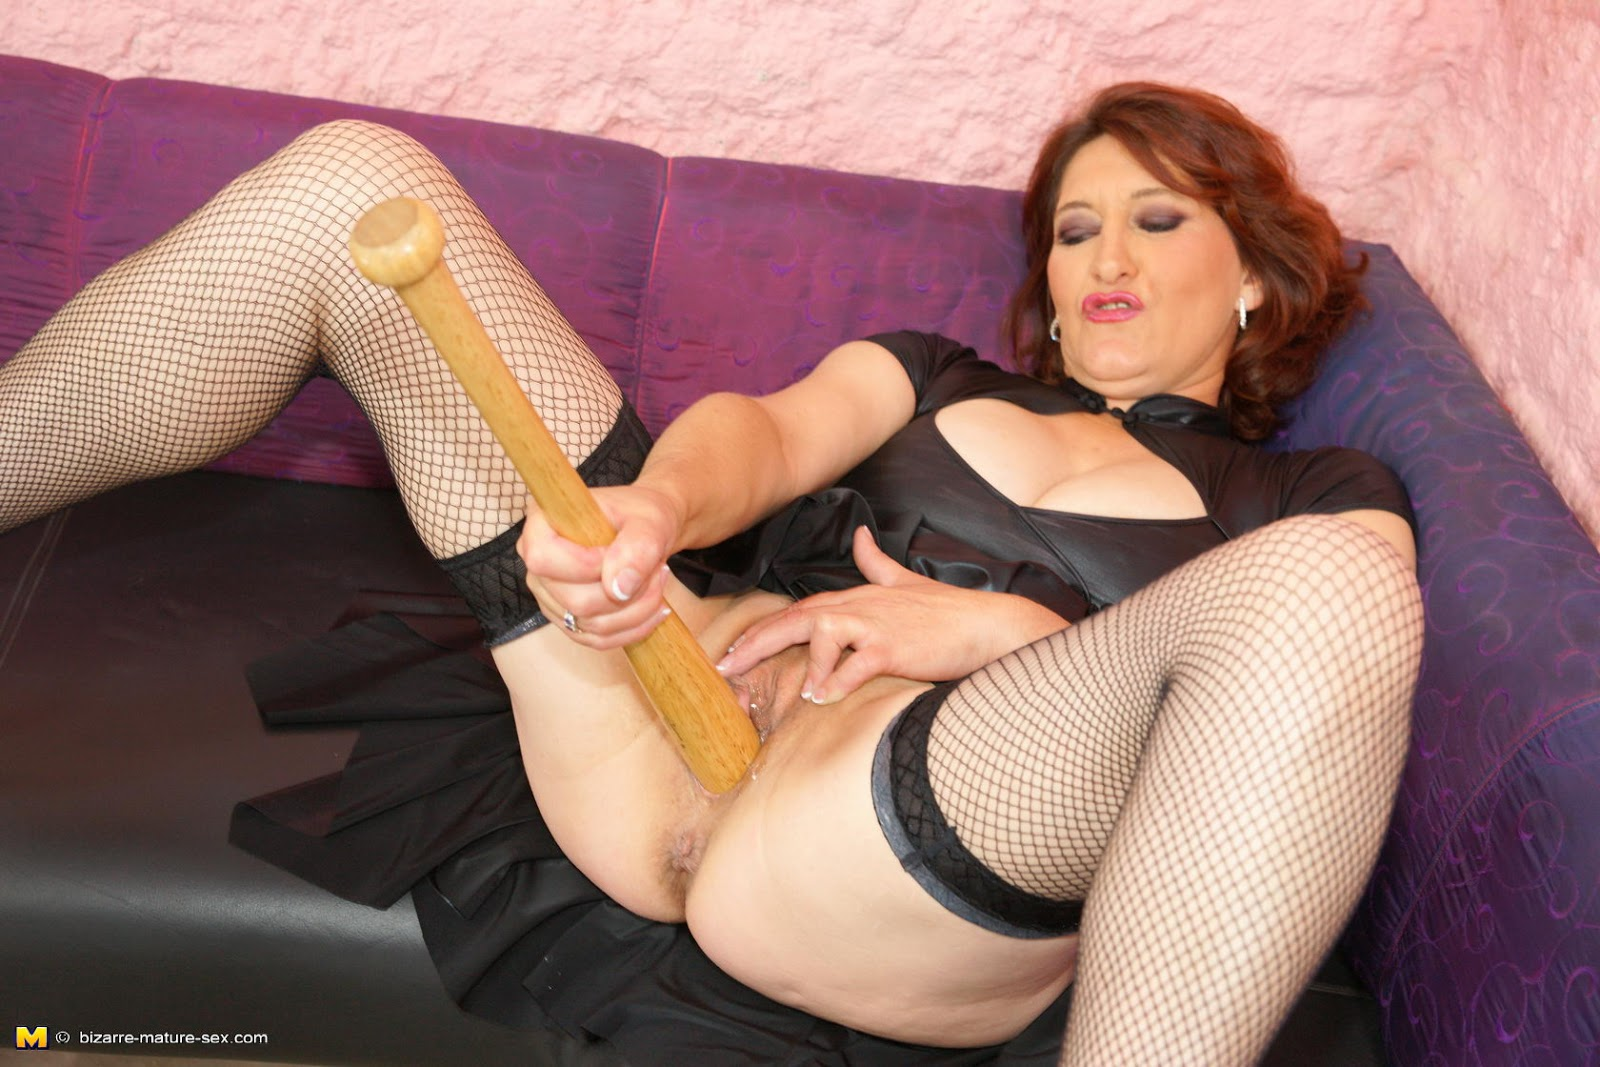 bbw french maid porn